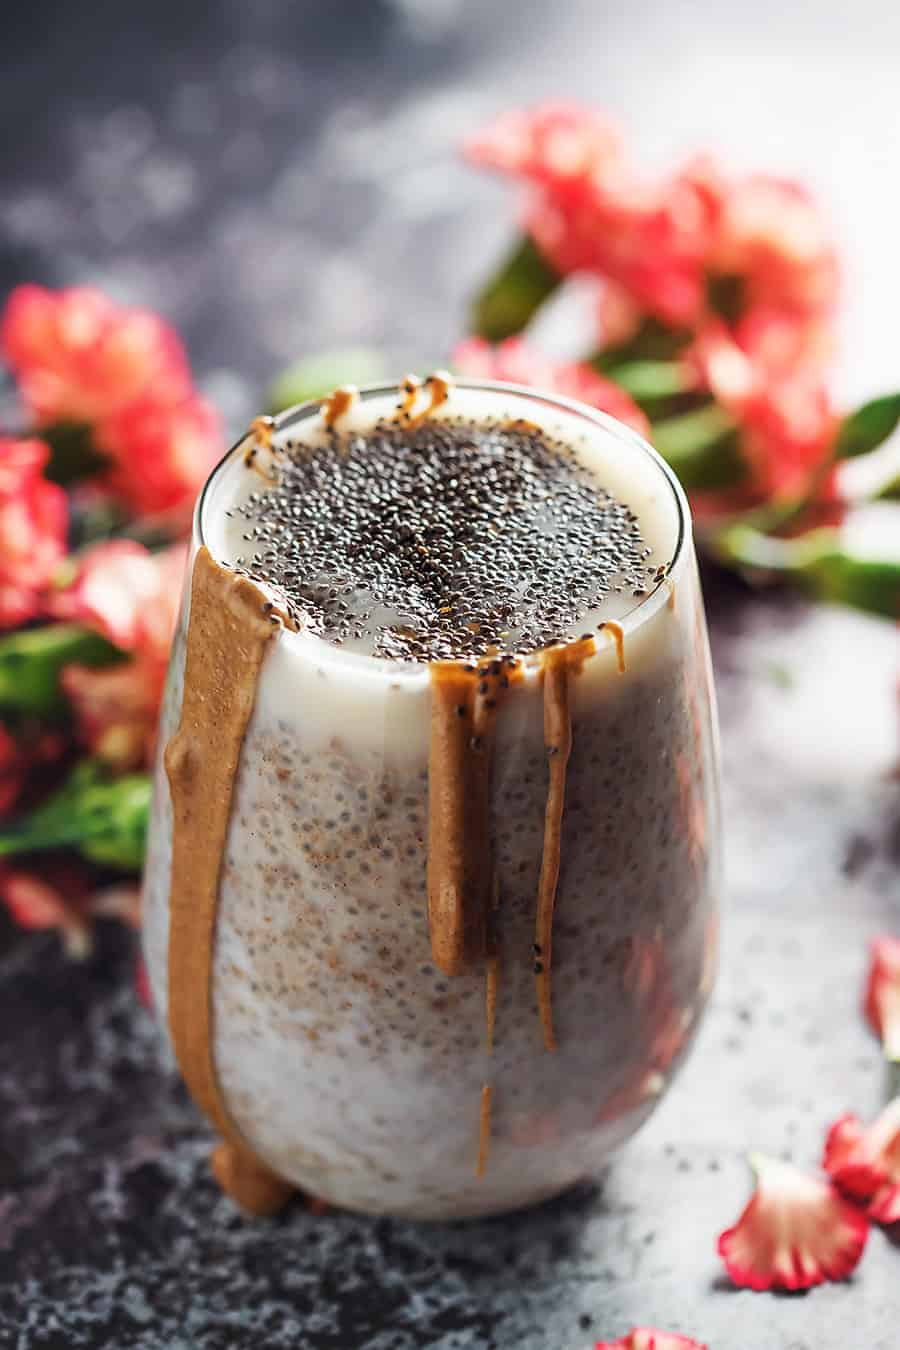 Keto Chia Pudding with Almond and Cinnamon from Low Carb With Jennifer  | 9 Keto Breakfast Recipes